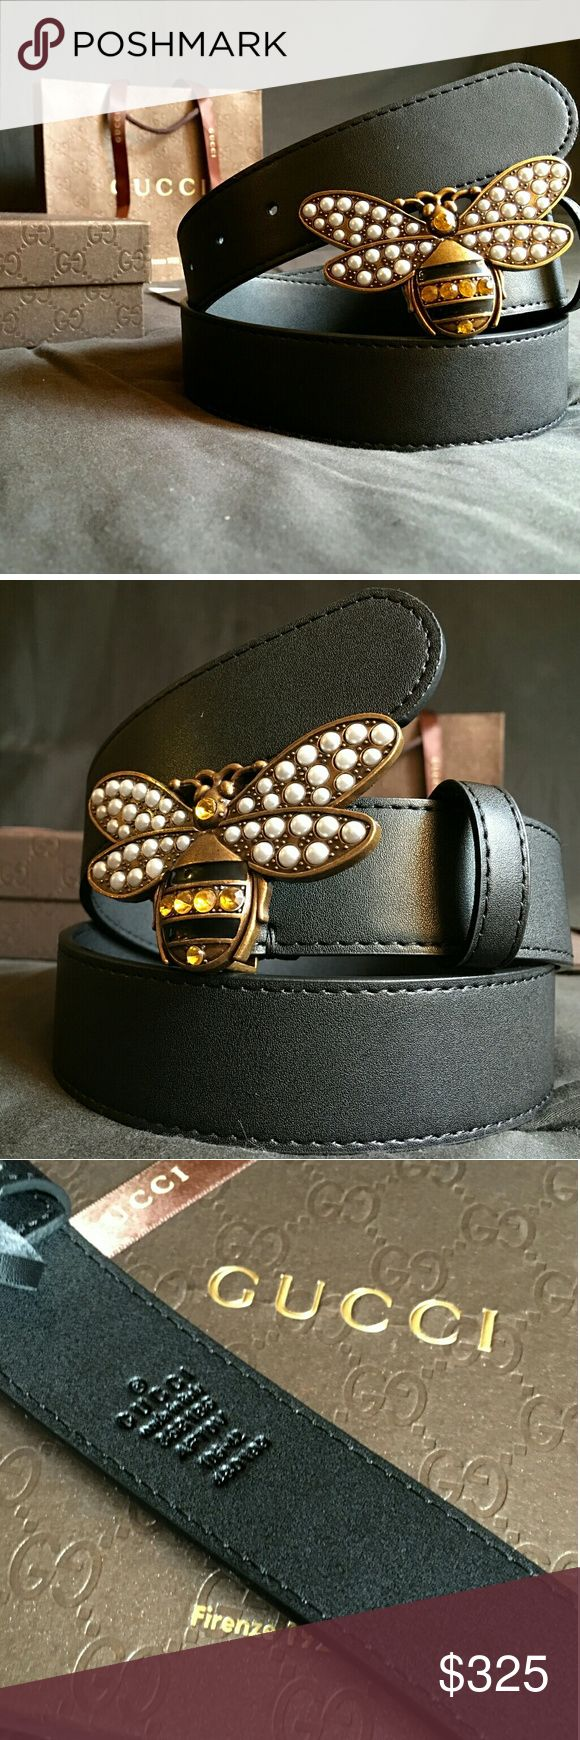 Gucci Bee Belt!!! Gucci Bee Belt W/ Pearl Buckle!!!  Brand New!!!  Unisex....For Man Or Woman!!!  Size Available - 32, 34!!!  Includes Gucci Belt, Gift Box, Dust Bag, Ribbon, Etc!!!  Great Gift Idea!!!  Last Available!!!  Check My Listings For Other Great Items!!!             Ignore: Gucci gg monogram casual dress belts men's women's guccissma leather monogram web tiger bee embossed panther wool cable knit blooms supreme print angry cat ufo dragon studded snake double g Gucci Accessories…